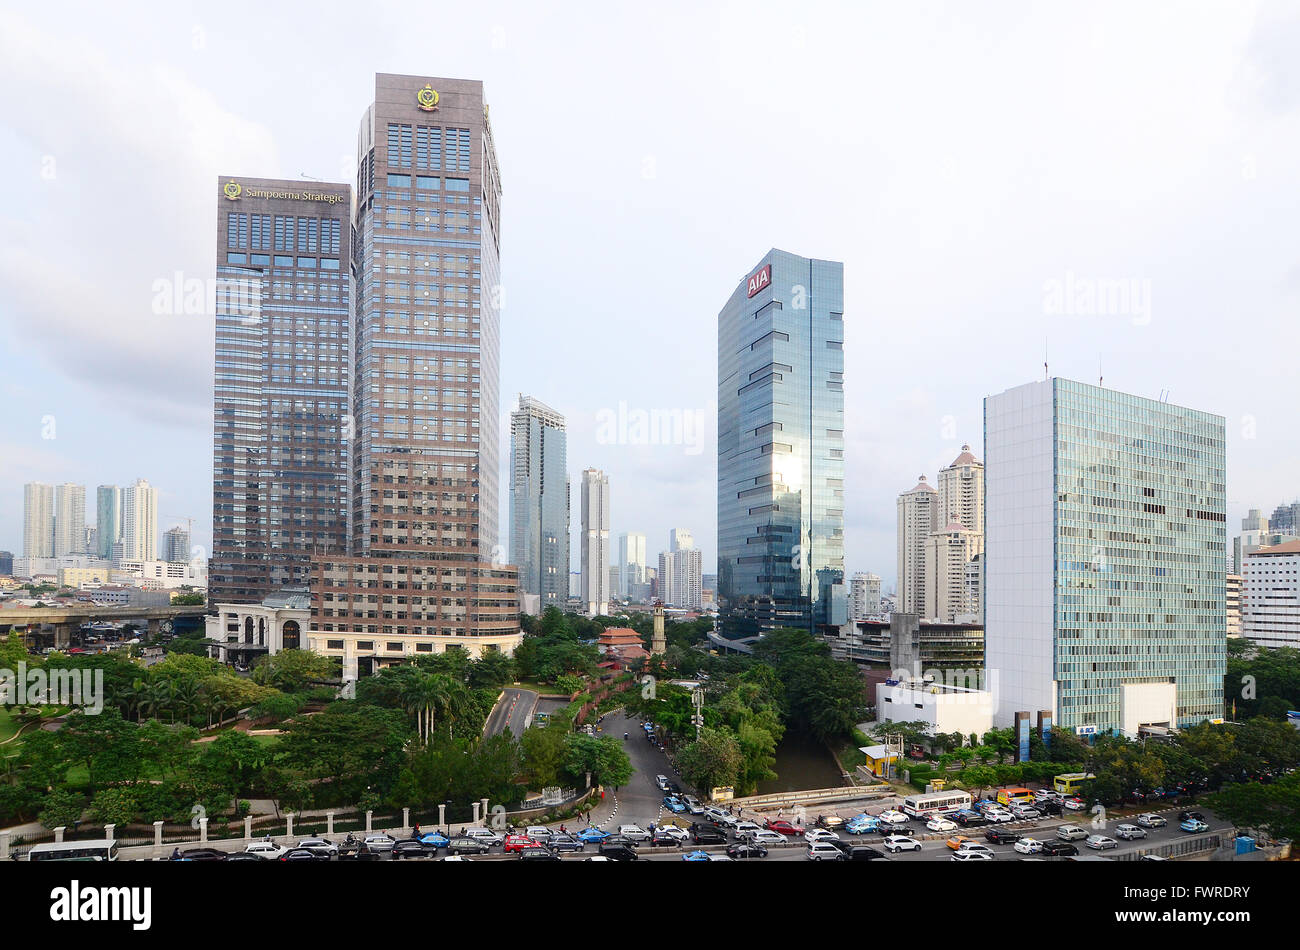 cityscapes view in Sudirman Street, Jakarta. A commercial and business area in the heart of central Jakarta. - Stock Image